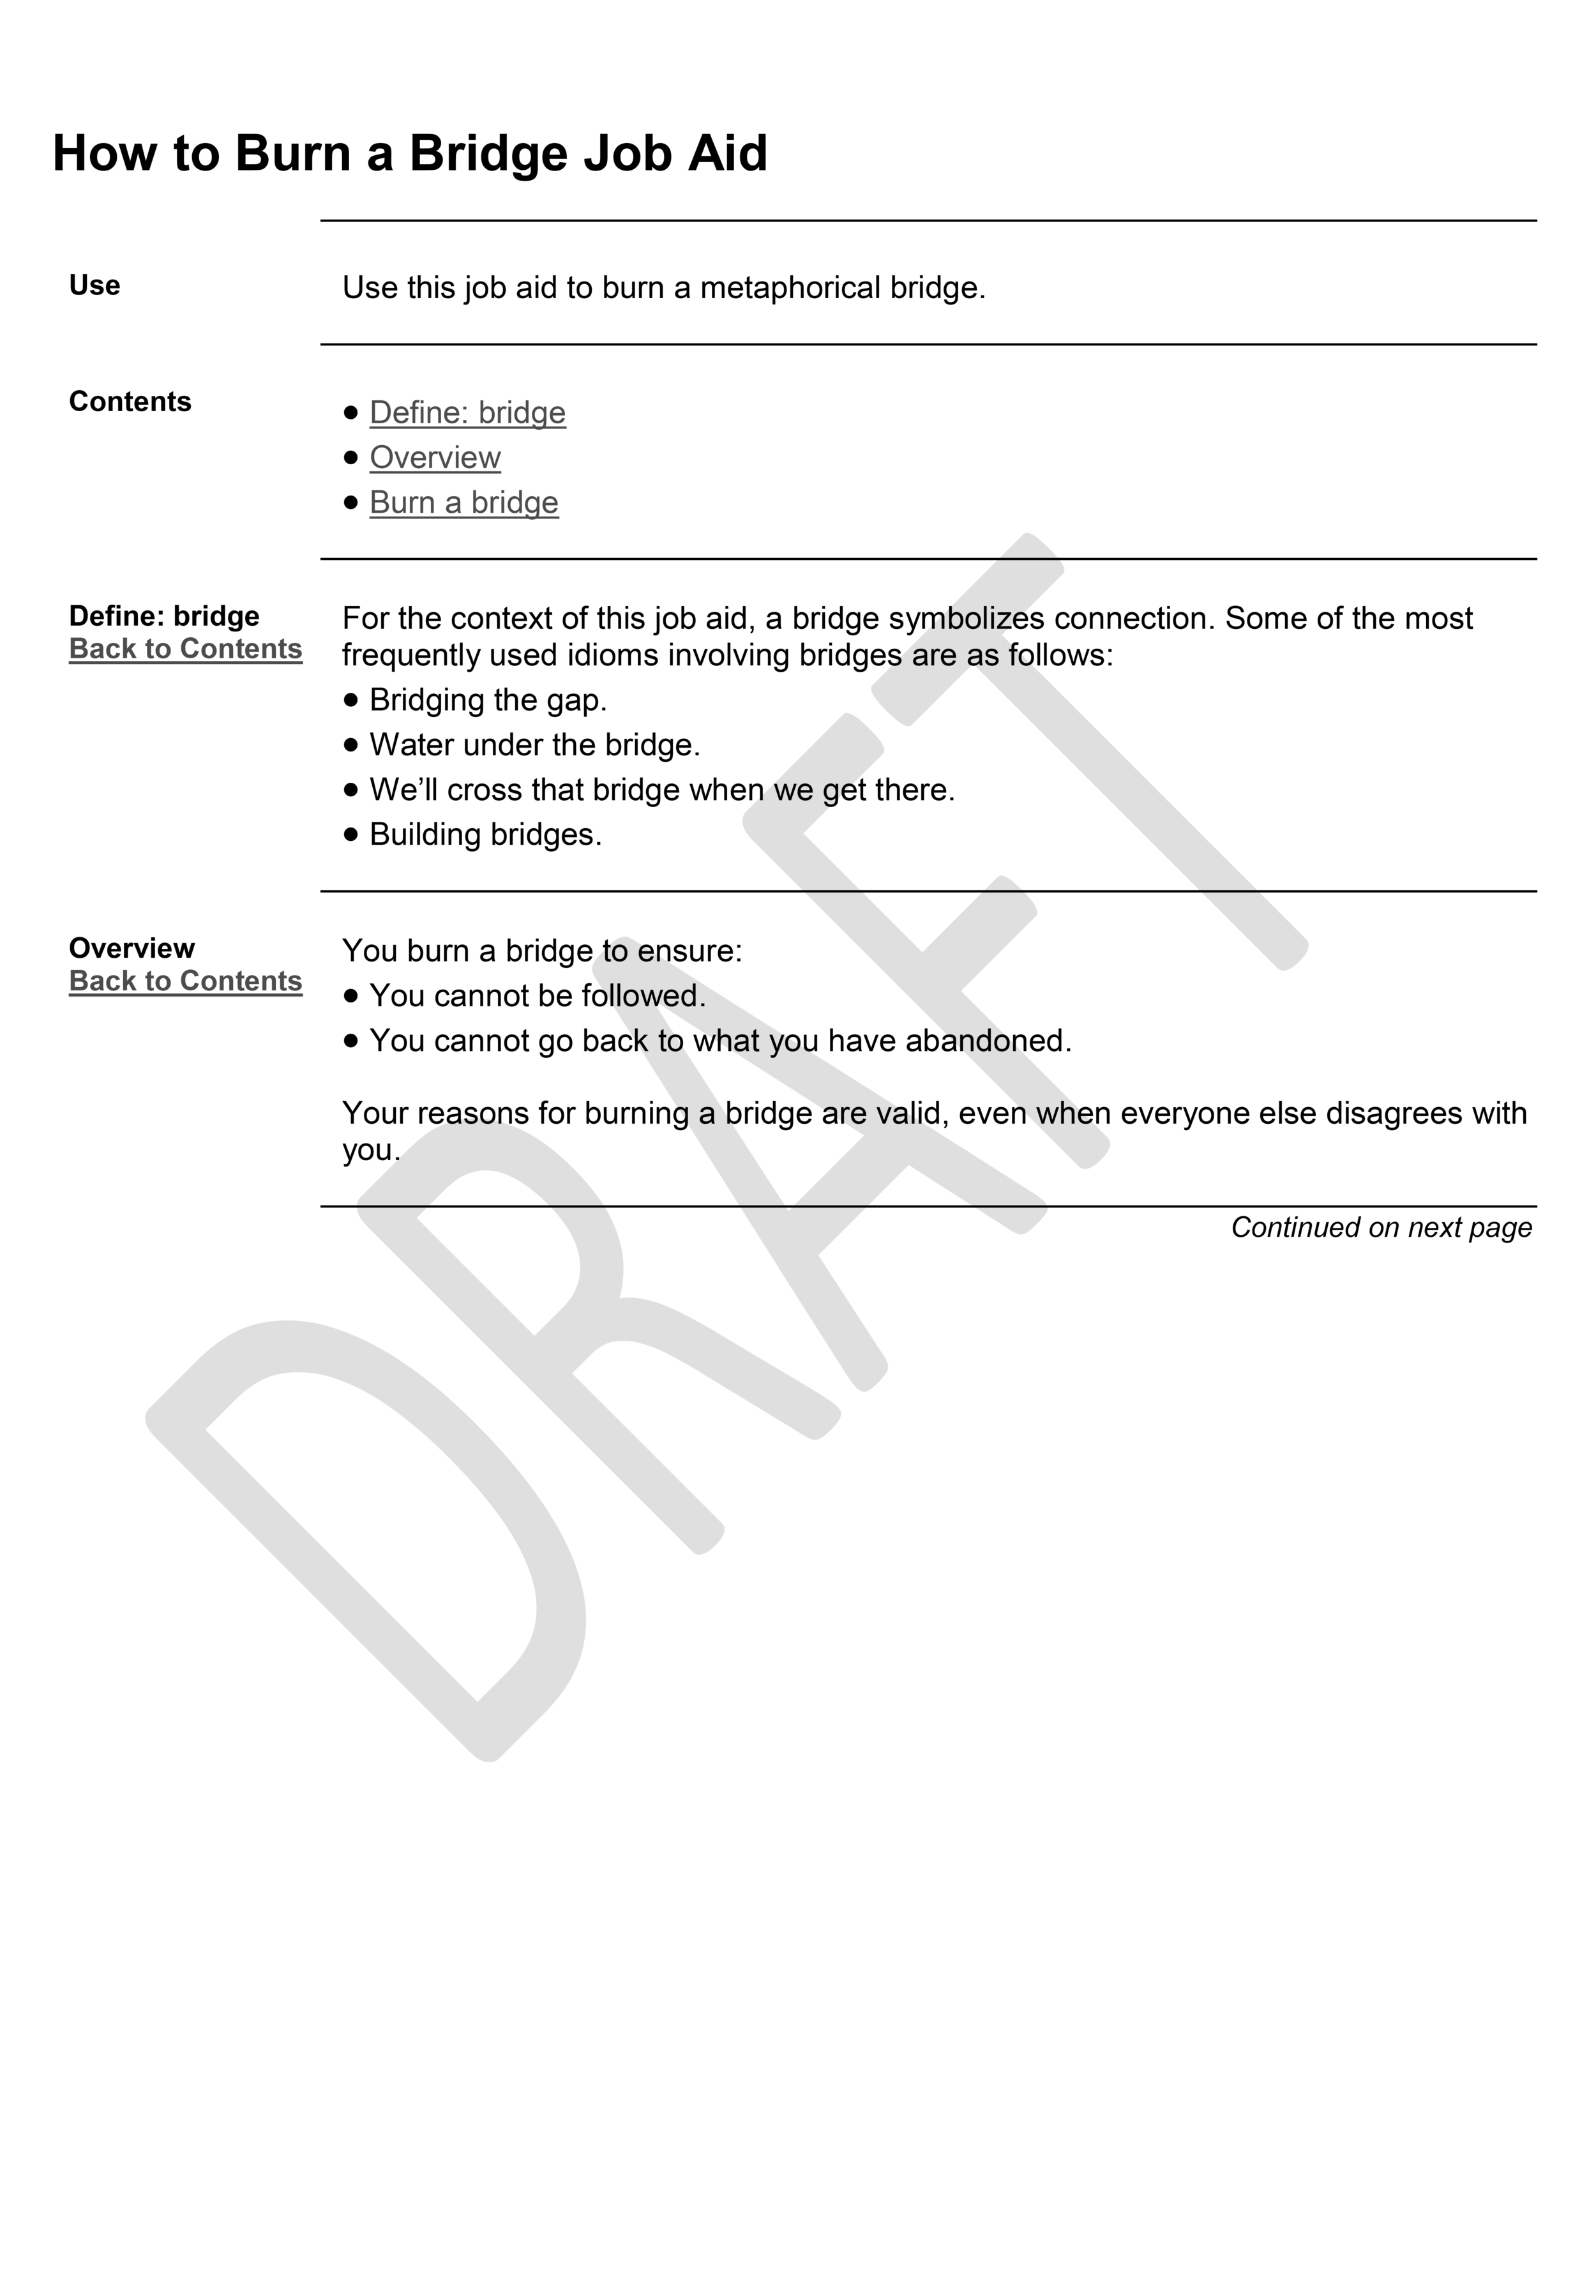 How To Burn A Bridge Job Aid Page 1